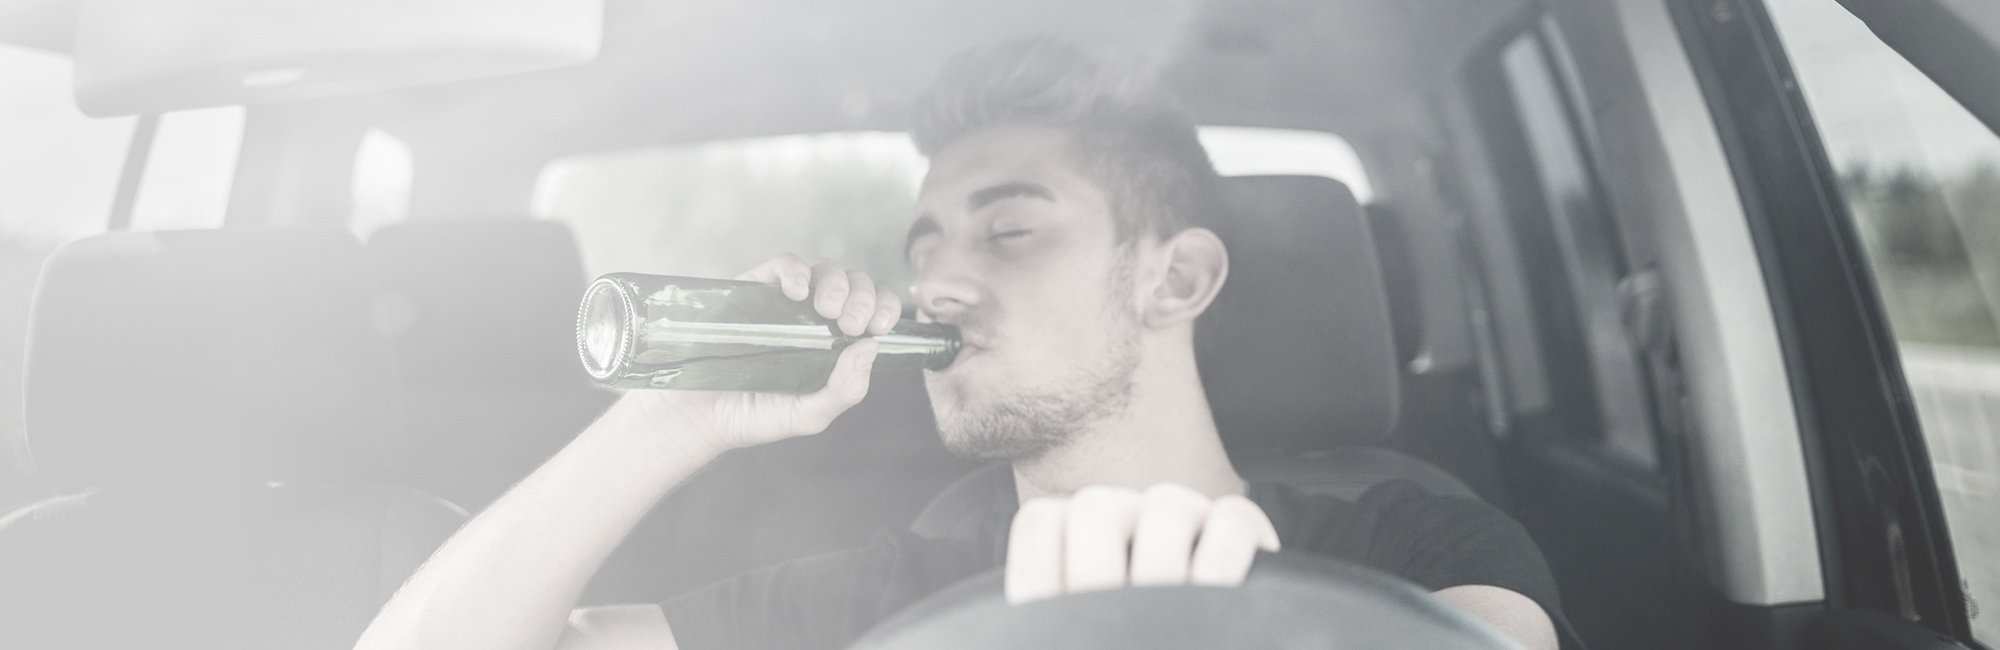 Drunk Driving Accident Lawyers in Miami